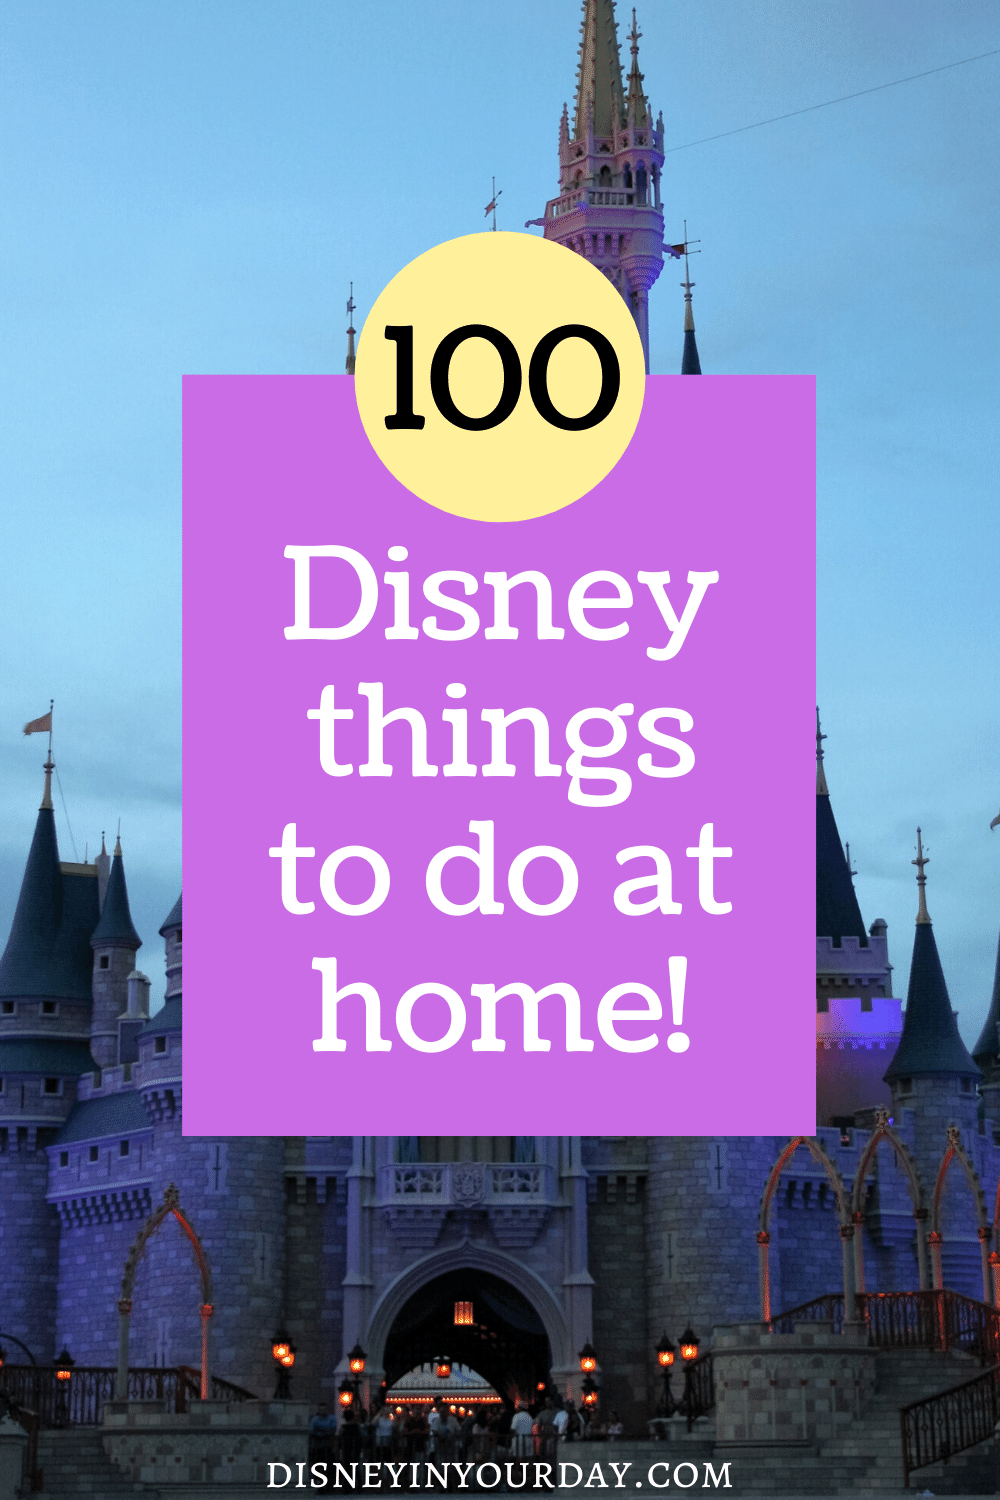 100 Disney things you can do at home - stuck at home for awhile? If you're feeling bored, there are still lots of ways to put some Disney into your day! How many of these 100 things have you already done, and which ones do you most want to try? Disney in your Day #disneyinyourday #disneyathome #disneydiy #disneycrafts #disneymovies #disneyplus #disneyrecipes #disneybounding